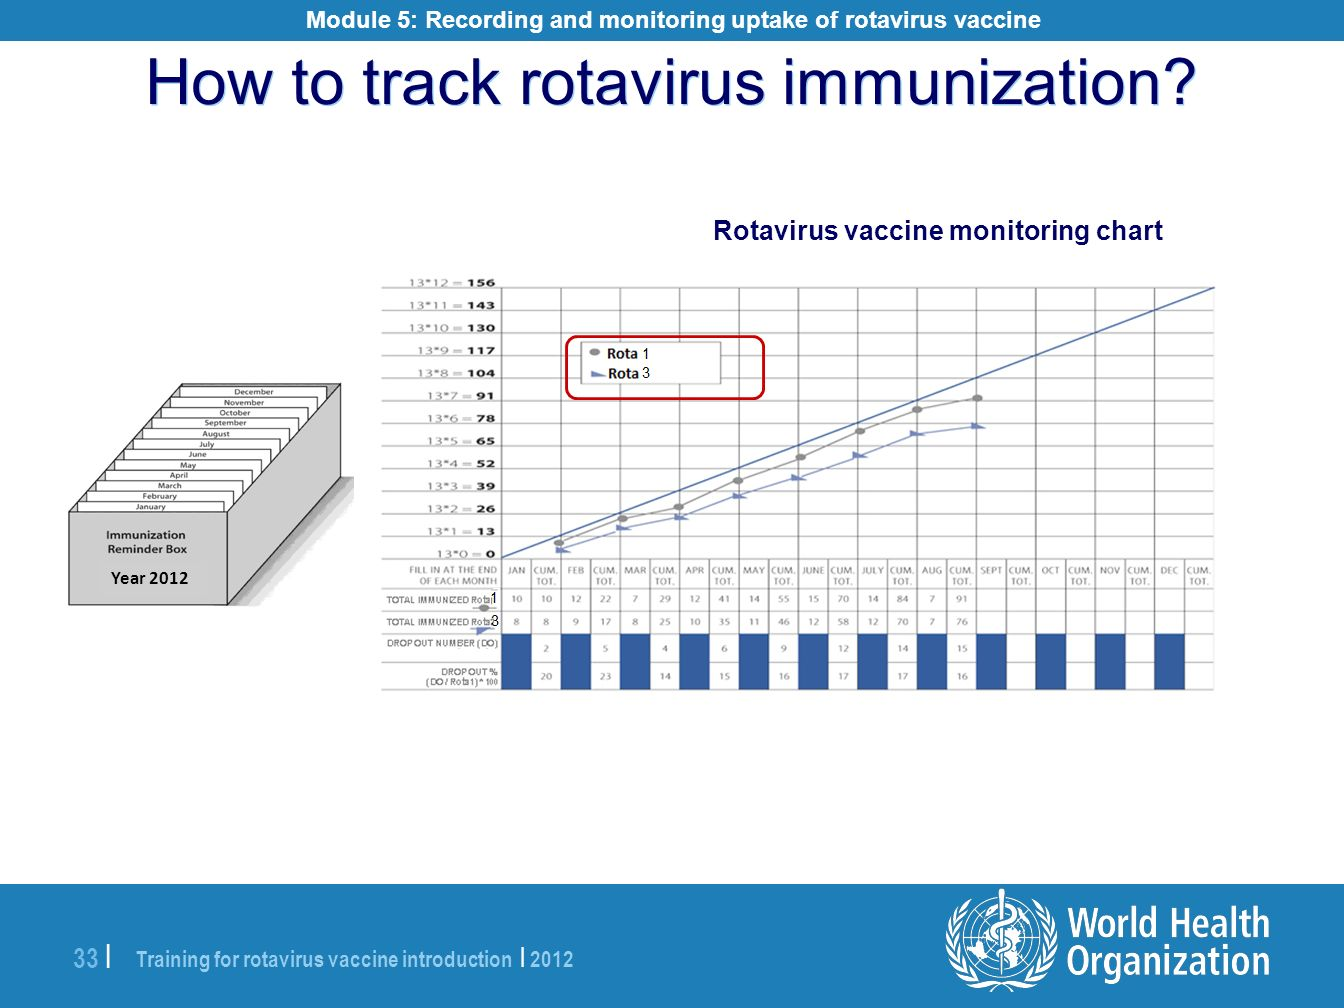 How to track rotavirus immunization